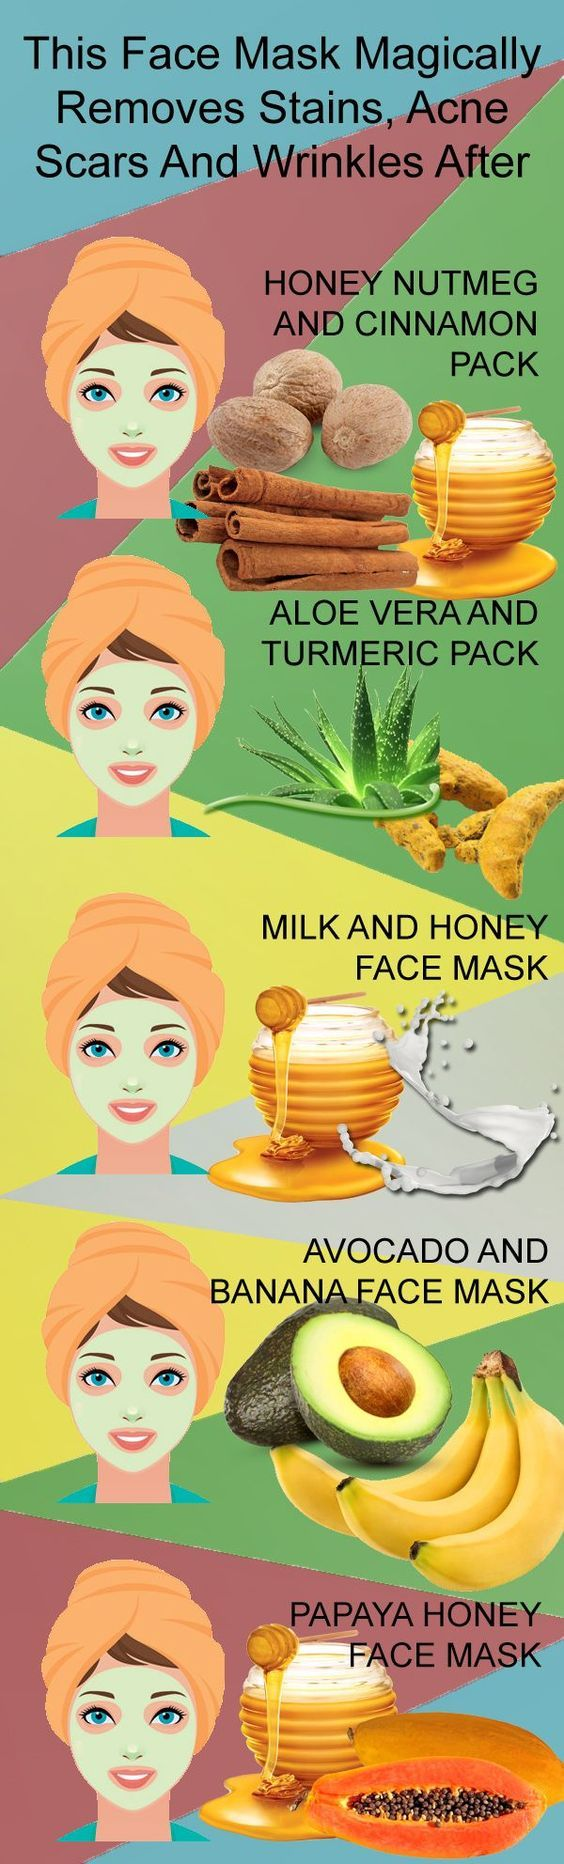 Face mask from homemade ingredients? I'm in!